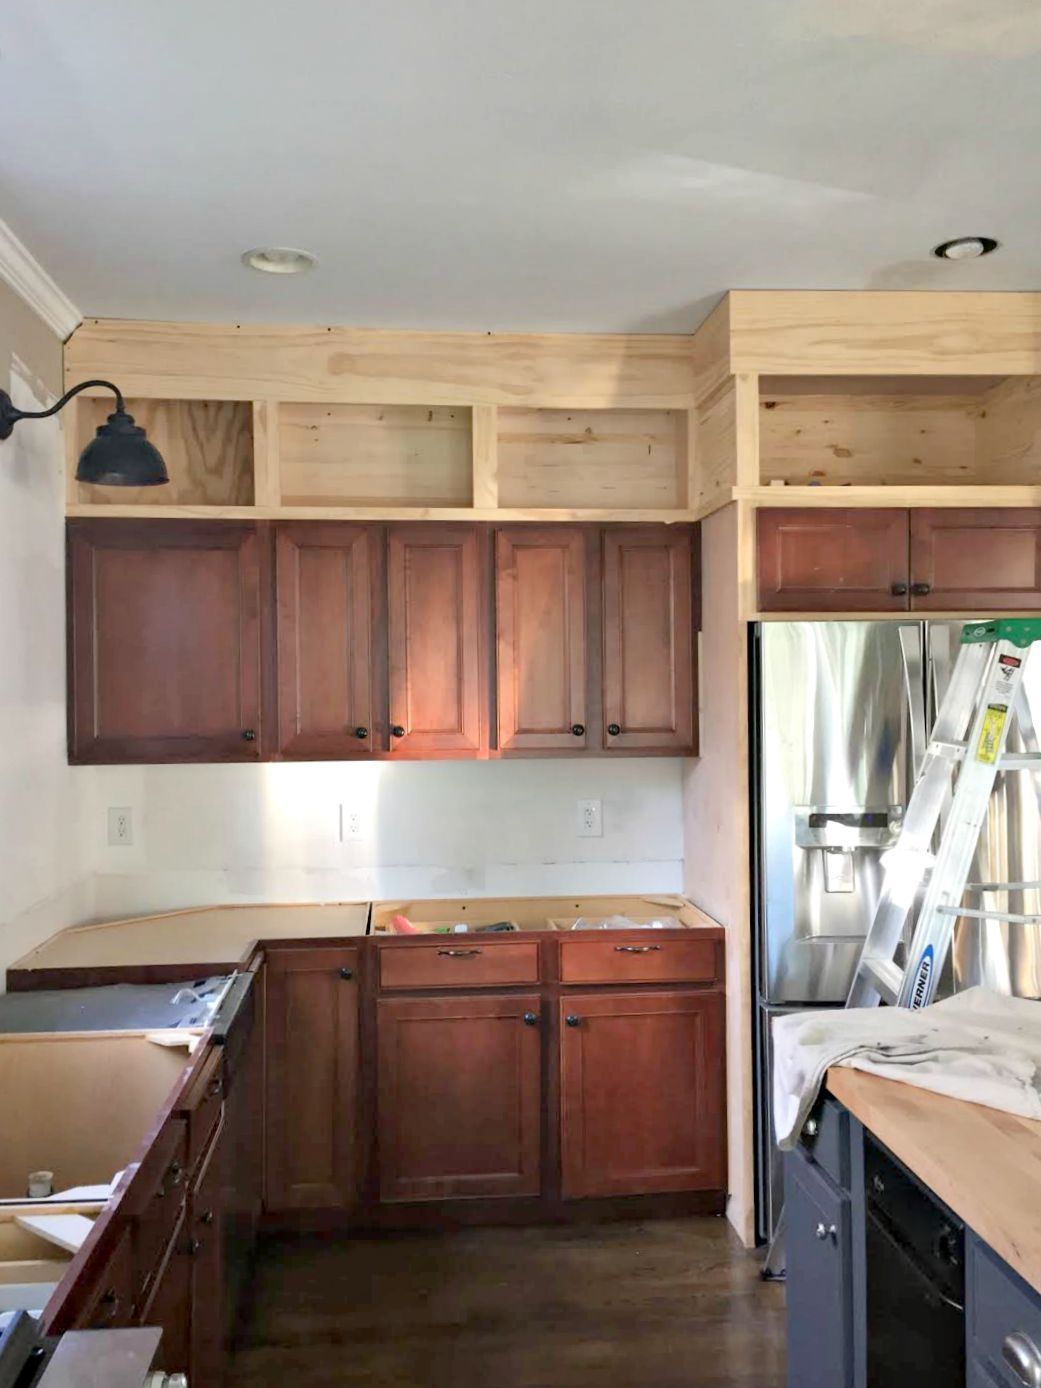 Moving Kitchen Cabinets Up To Ceiling Kitchen Cabinets To Ceiling Building Kitchen Cabinets Diy Kitchen Cabinets